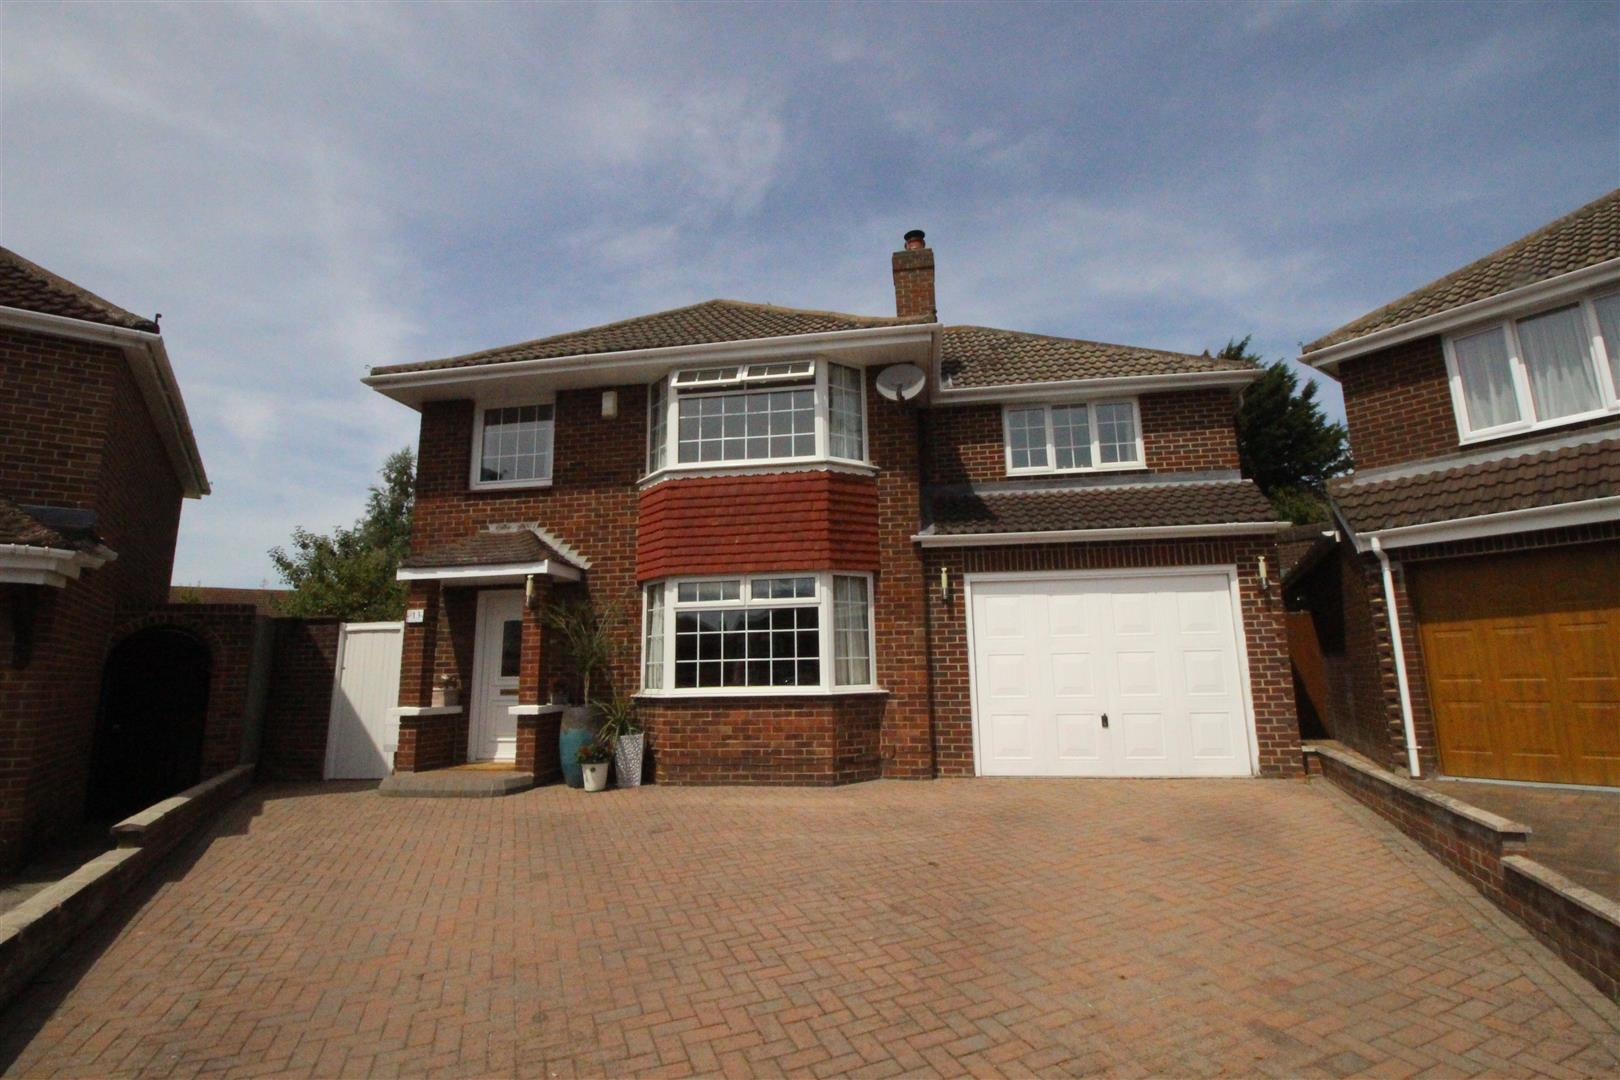 4 Bedrooms Detached House for sale in Bucklebury Close, Stratton, Swindon